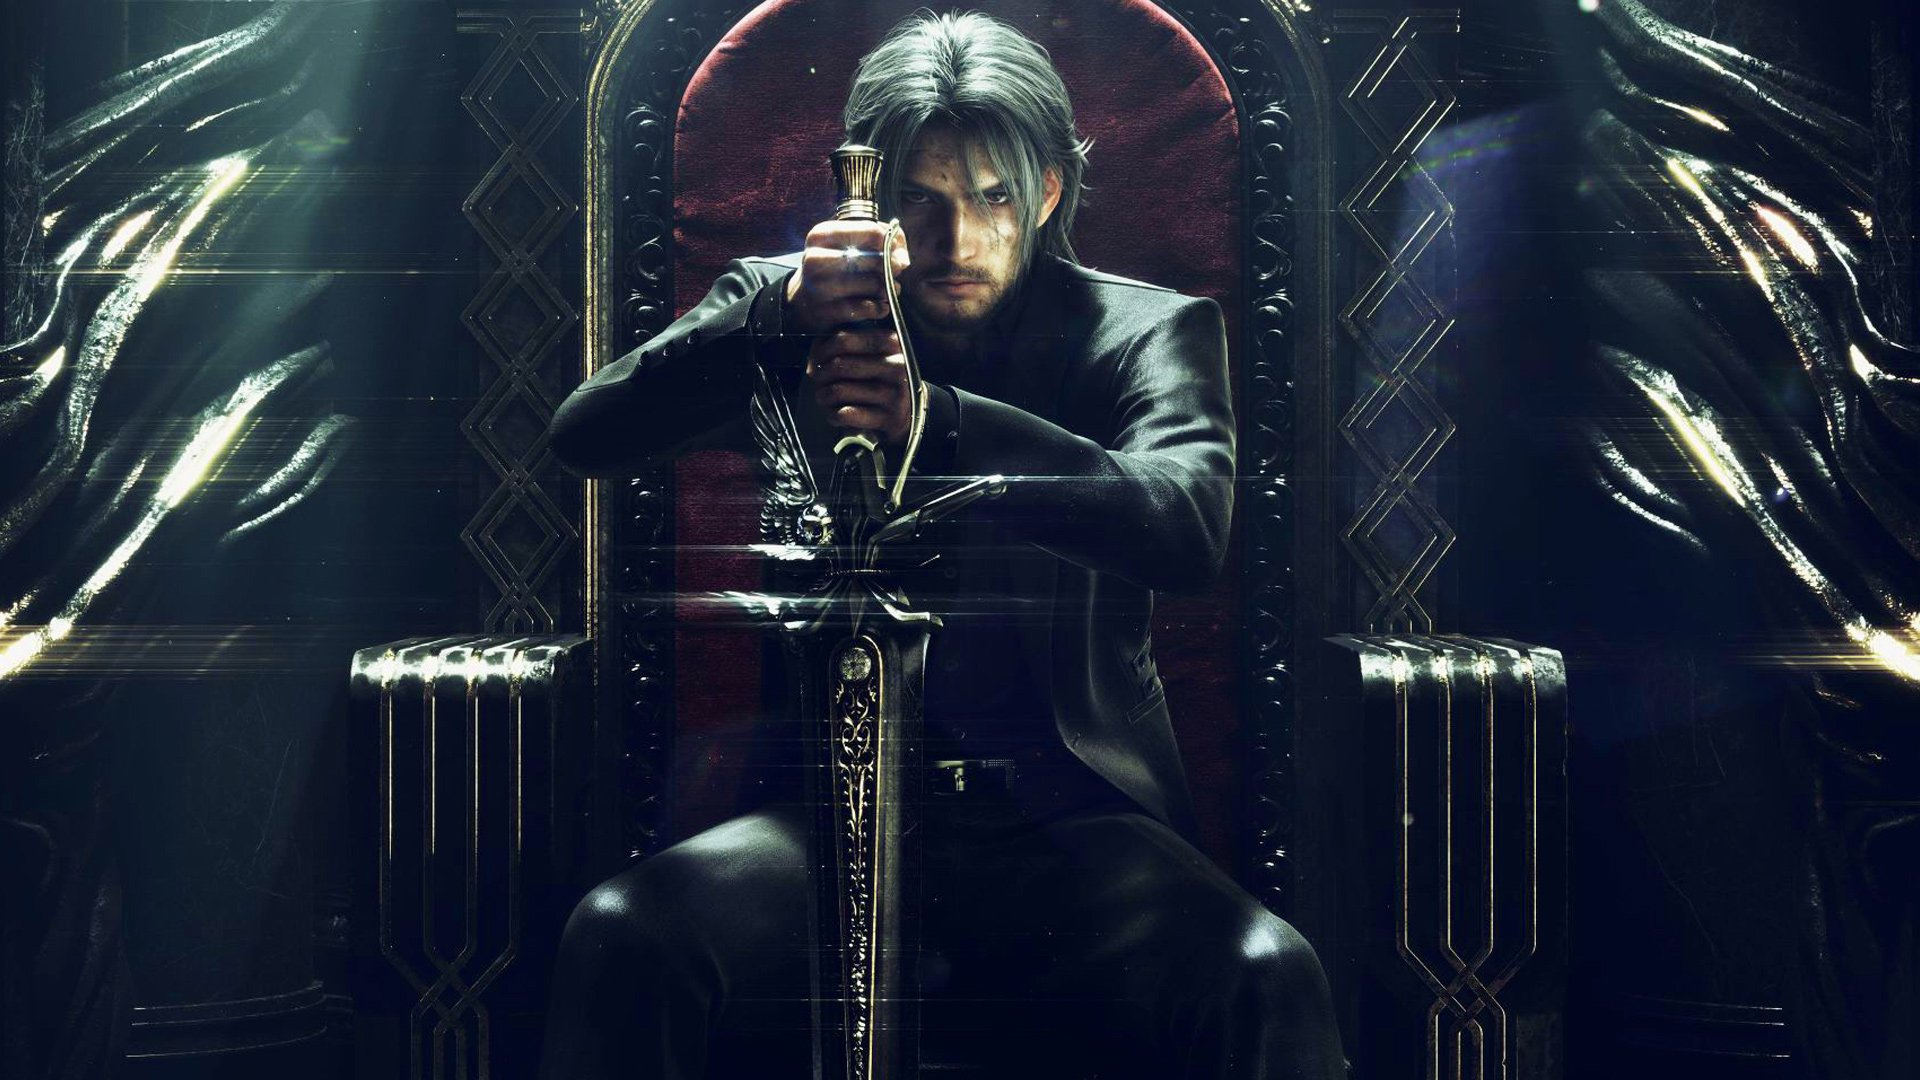 Final Fantasy Xv Old Noctis Hd Wallpaper Background Image